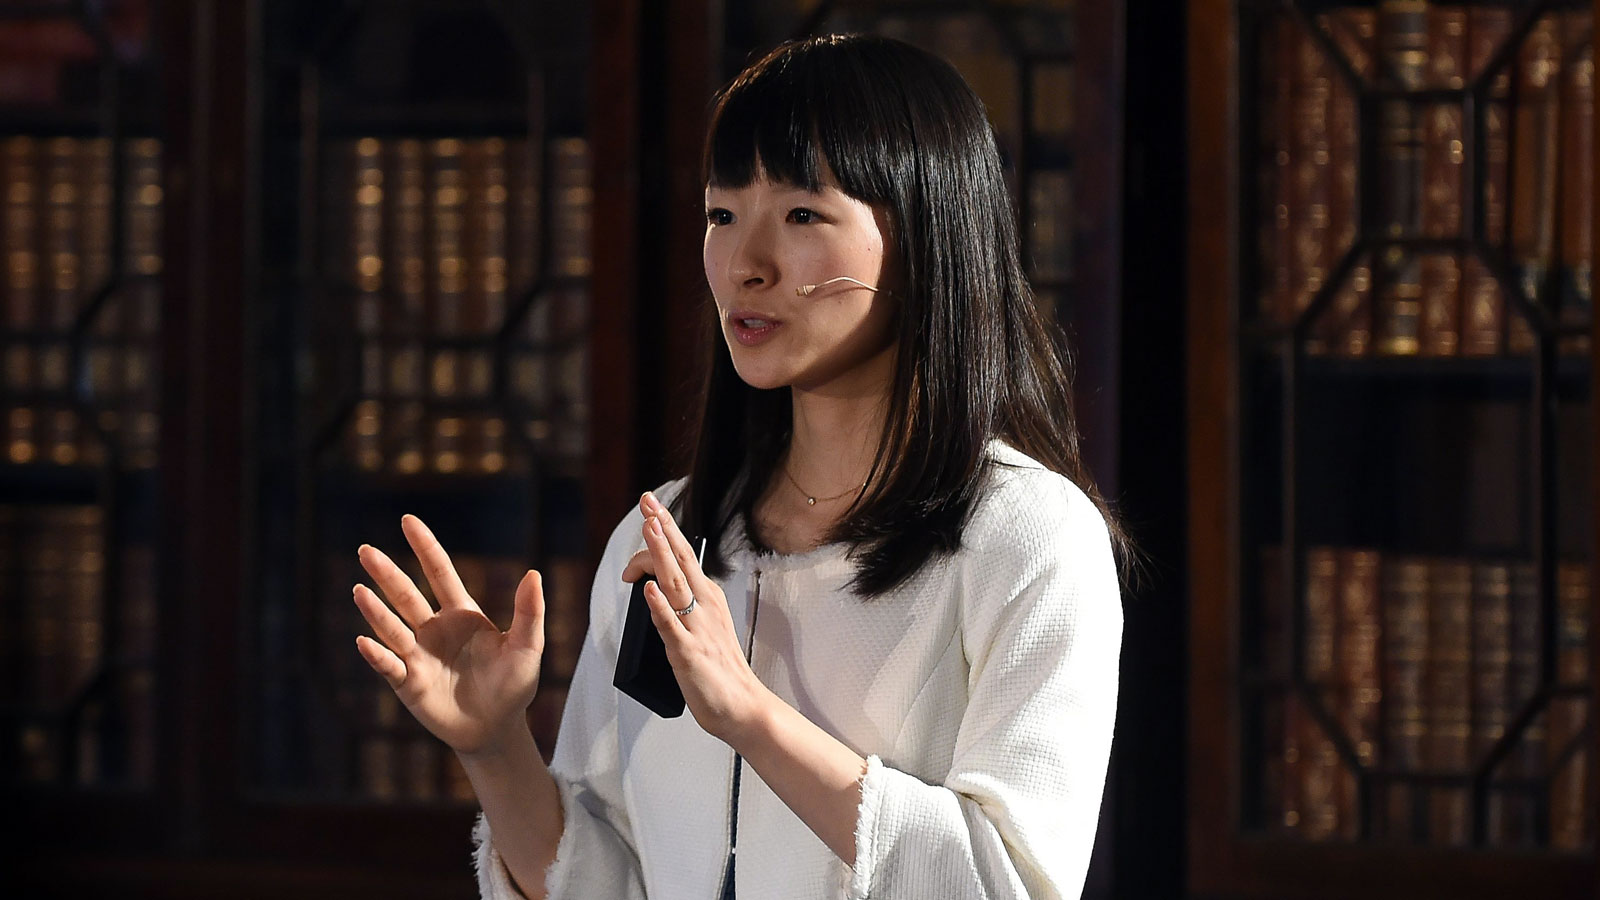 Marie Kondo visited my quarantine workspace to give me a lesson on letting go